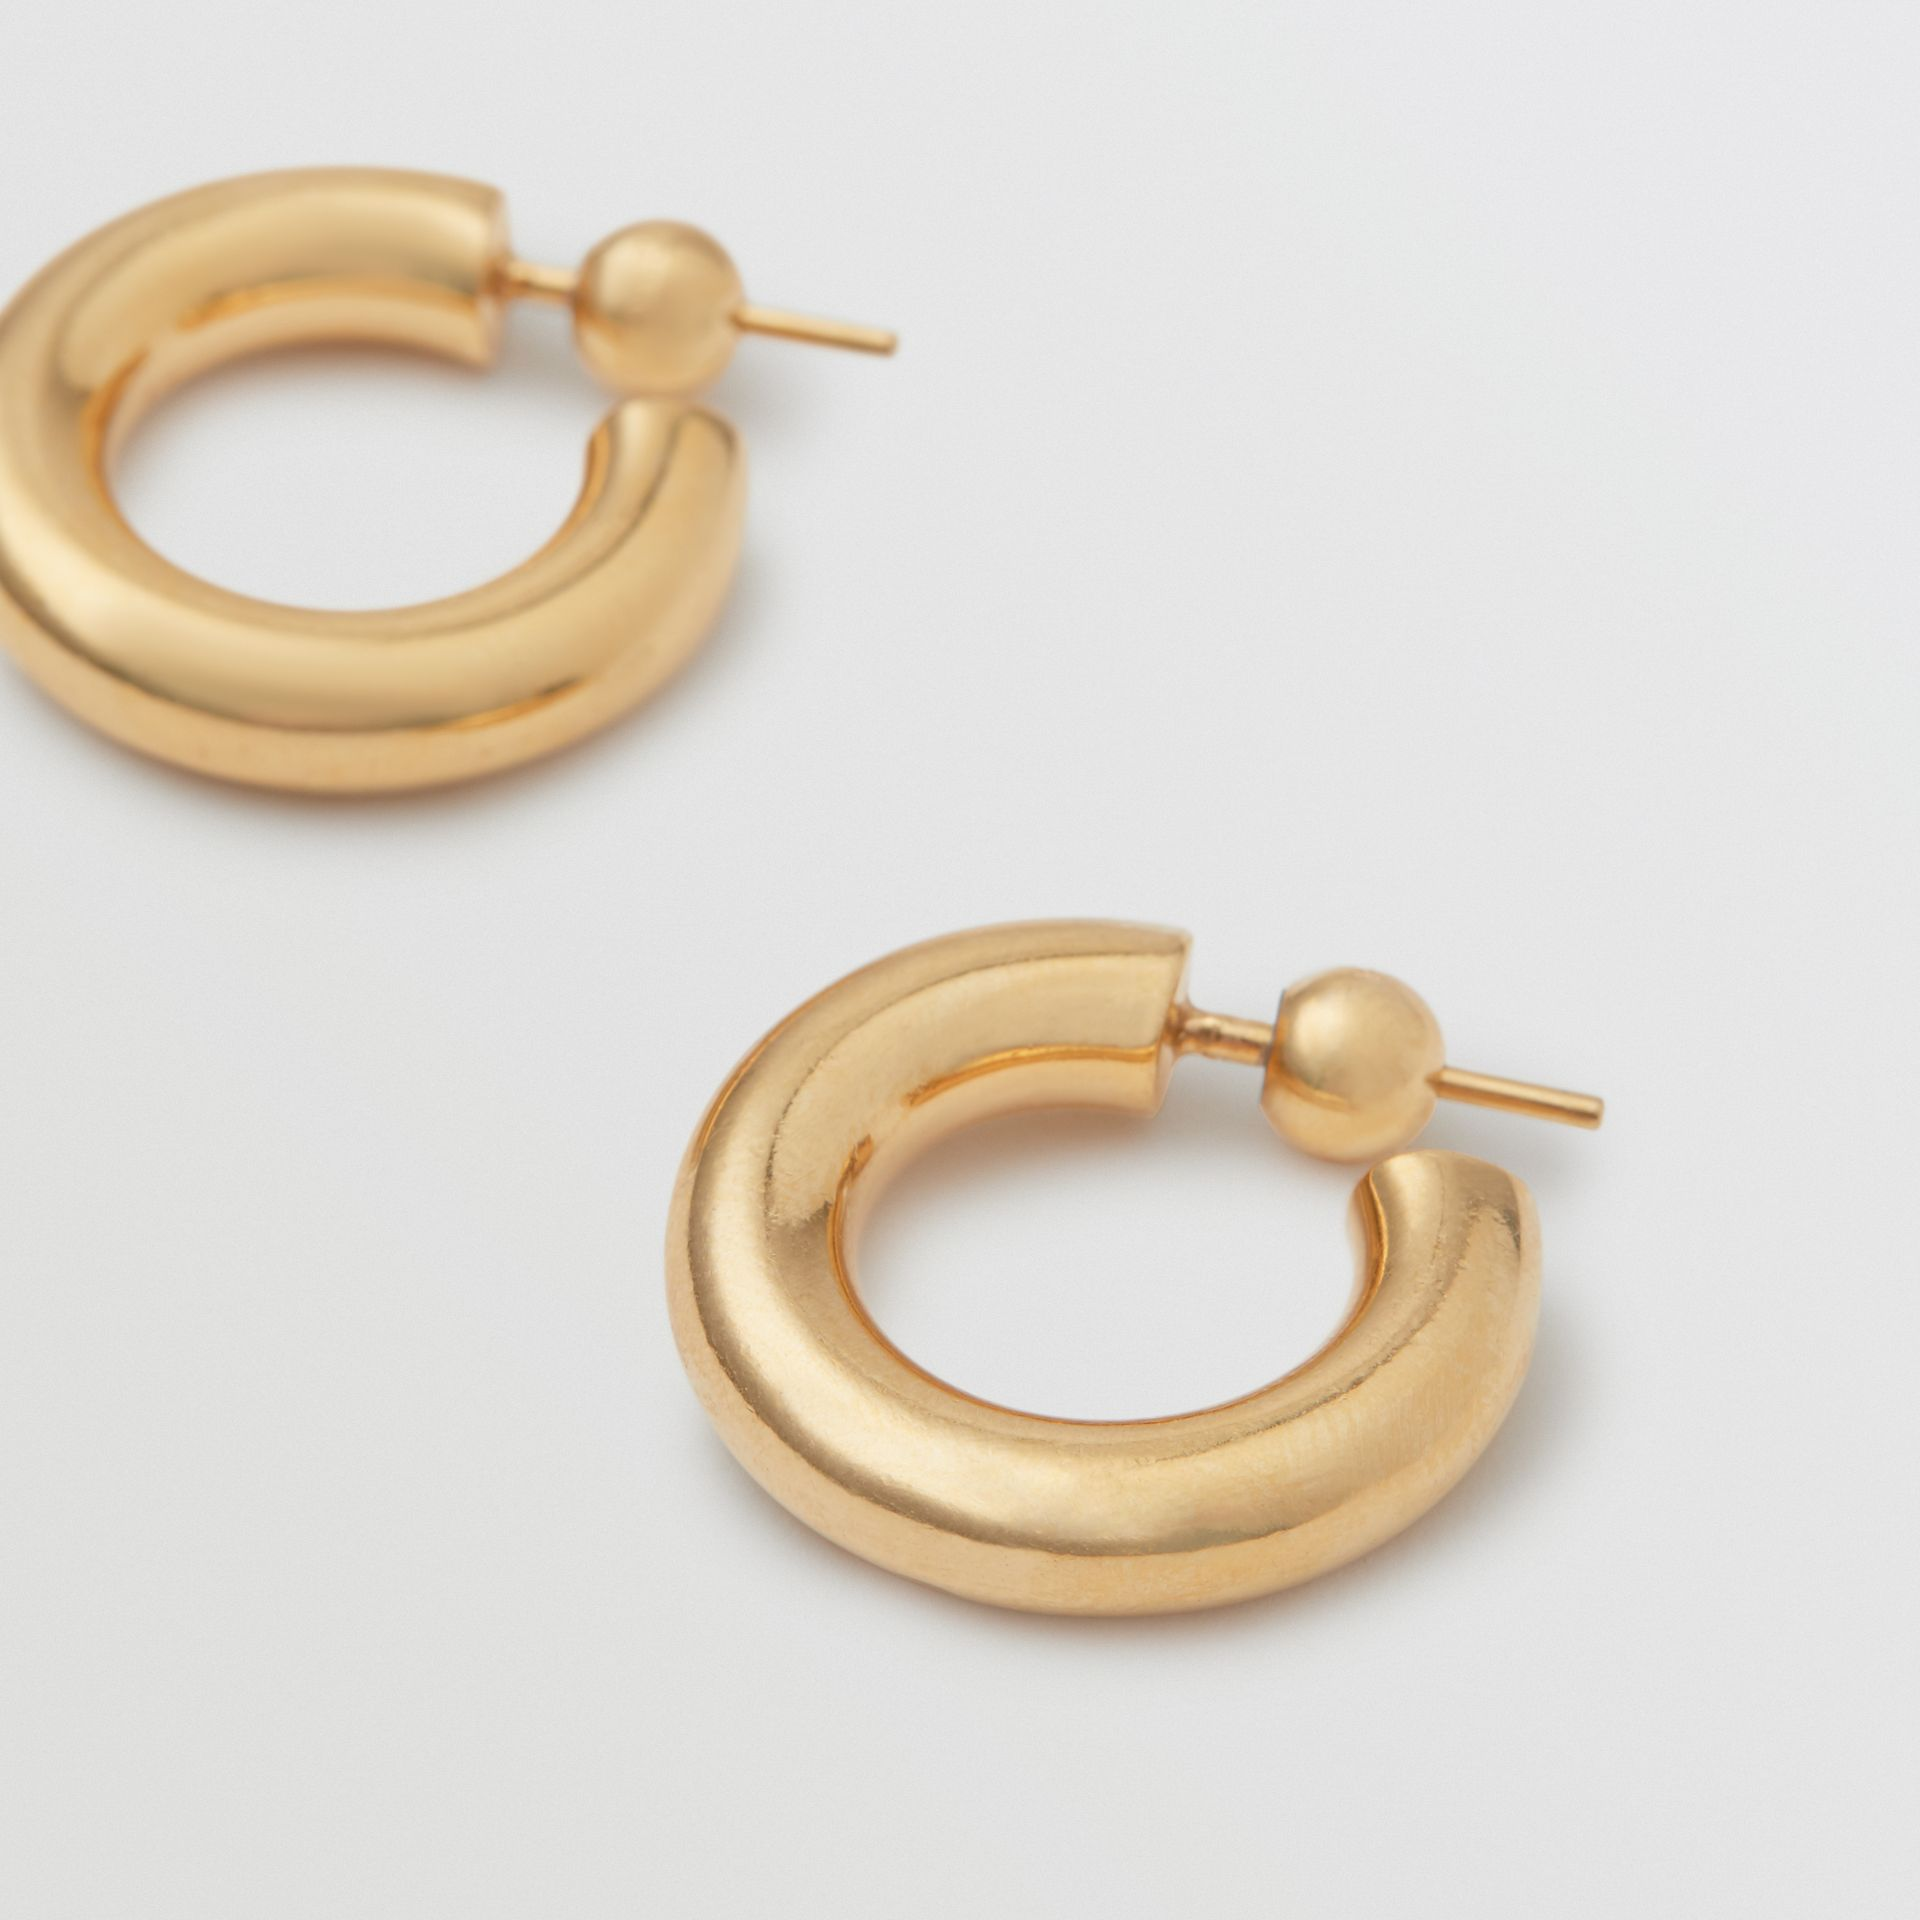 Gold-plated Hoop Earrings in Light - Women | Burberry Canada - gallery image 1